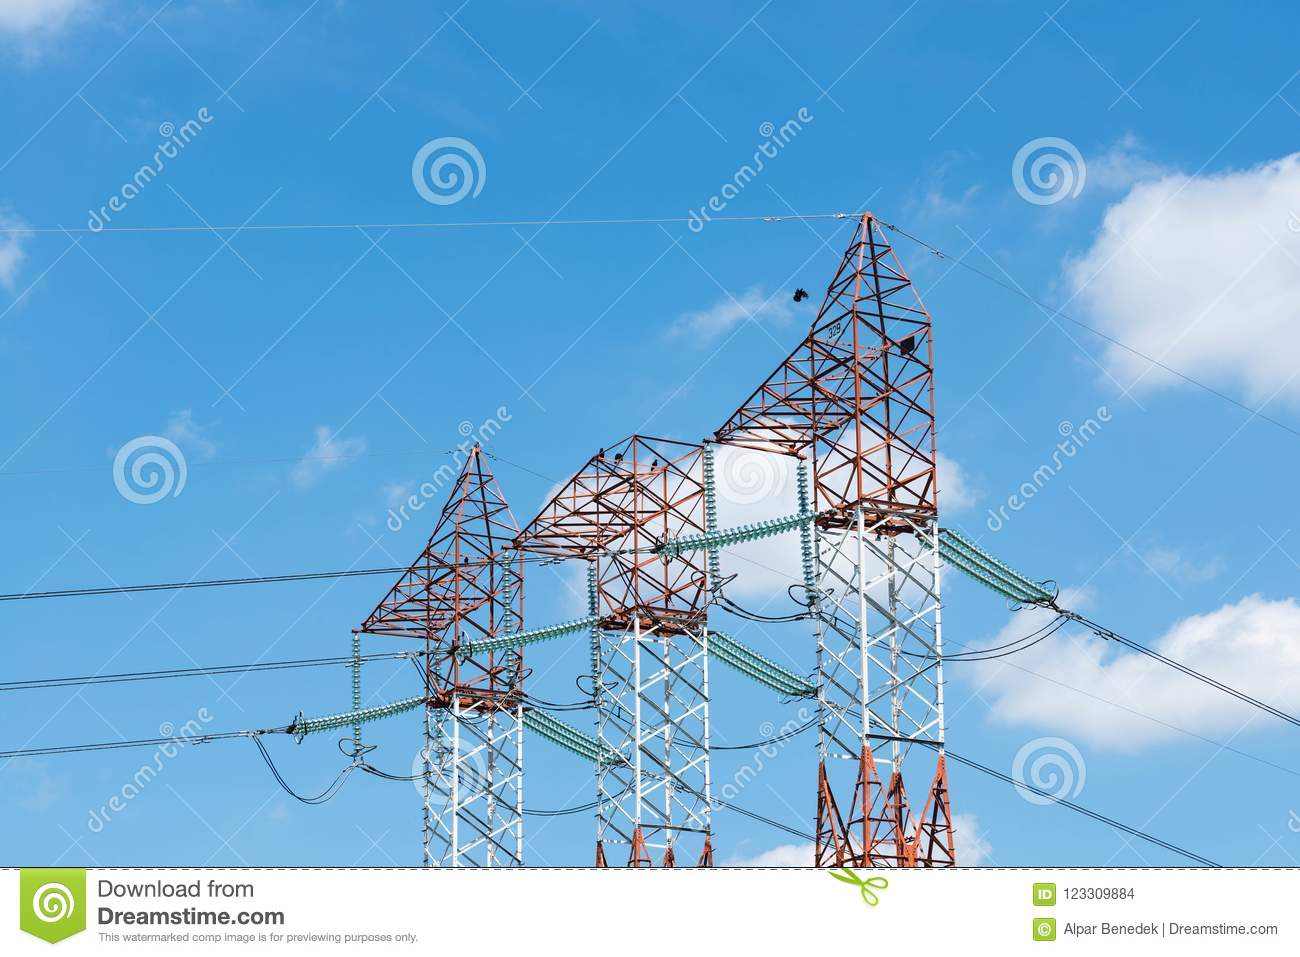 Red white electricity pylons, blue sky with white clouds